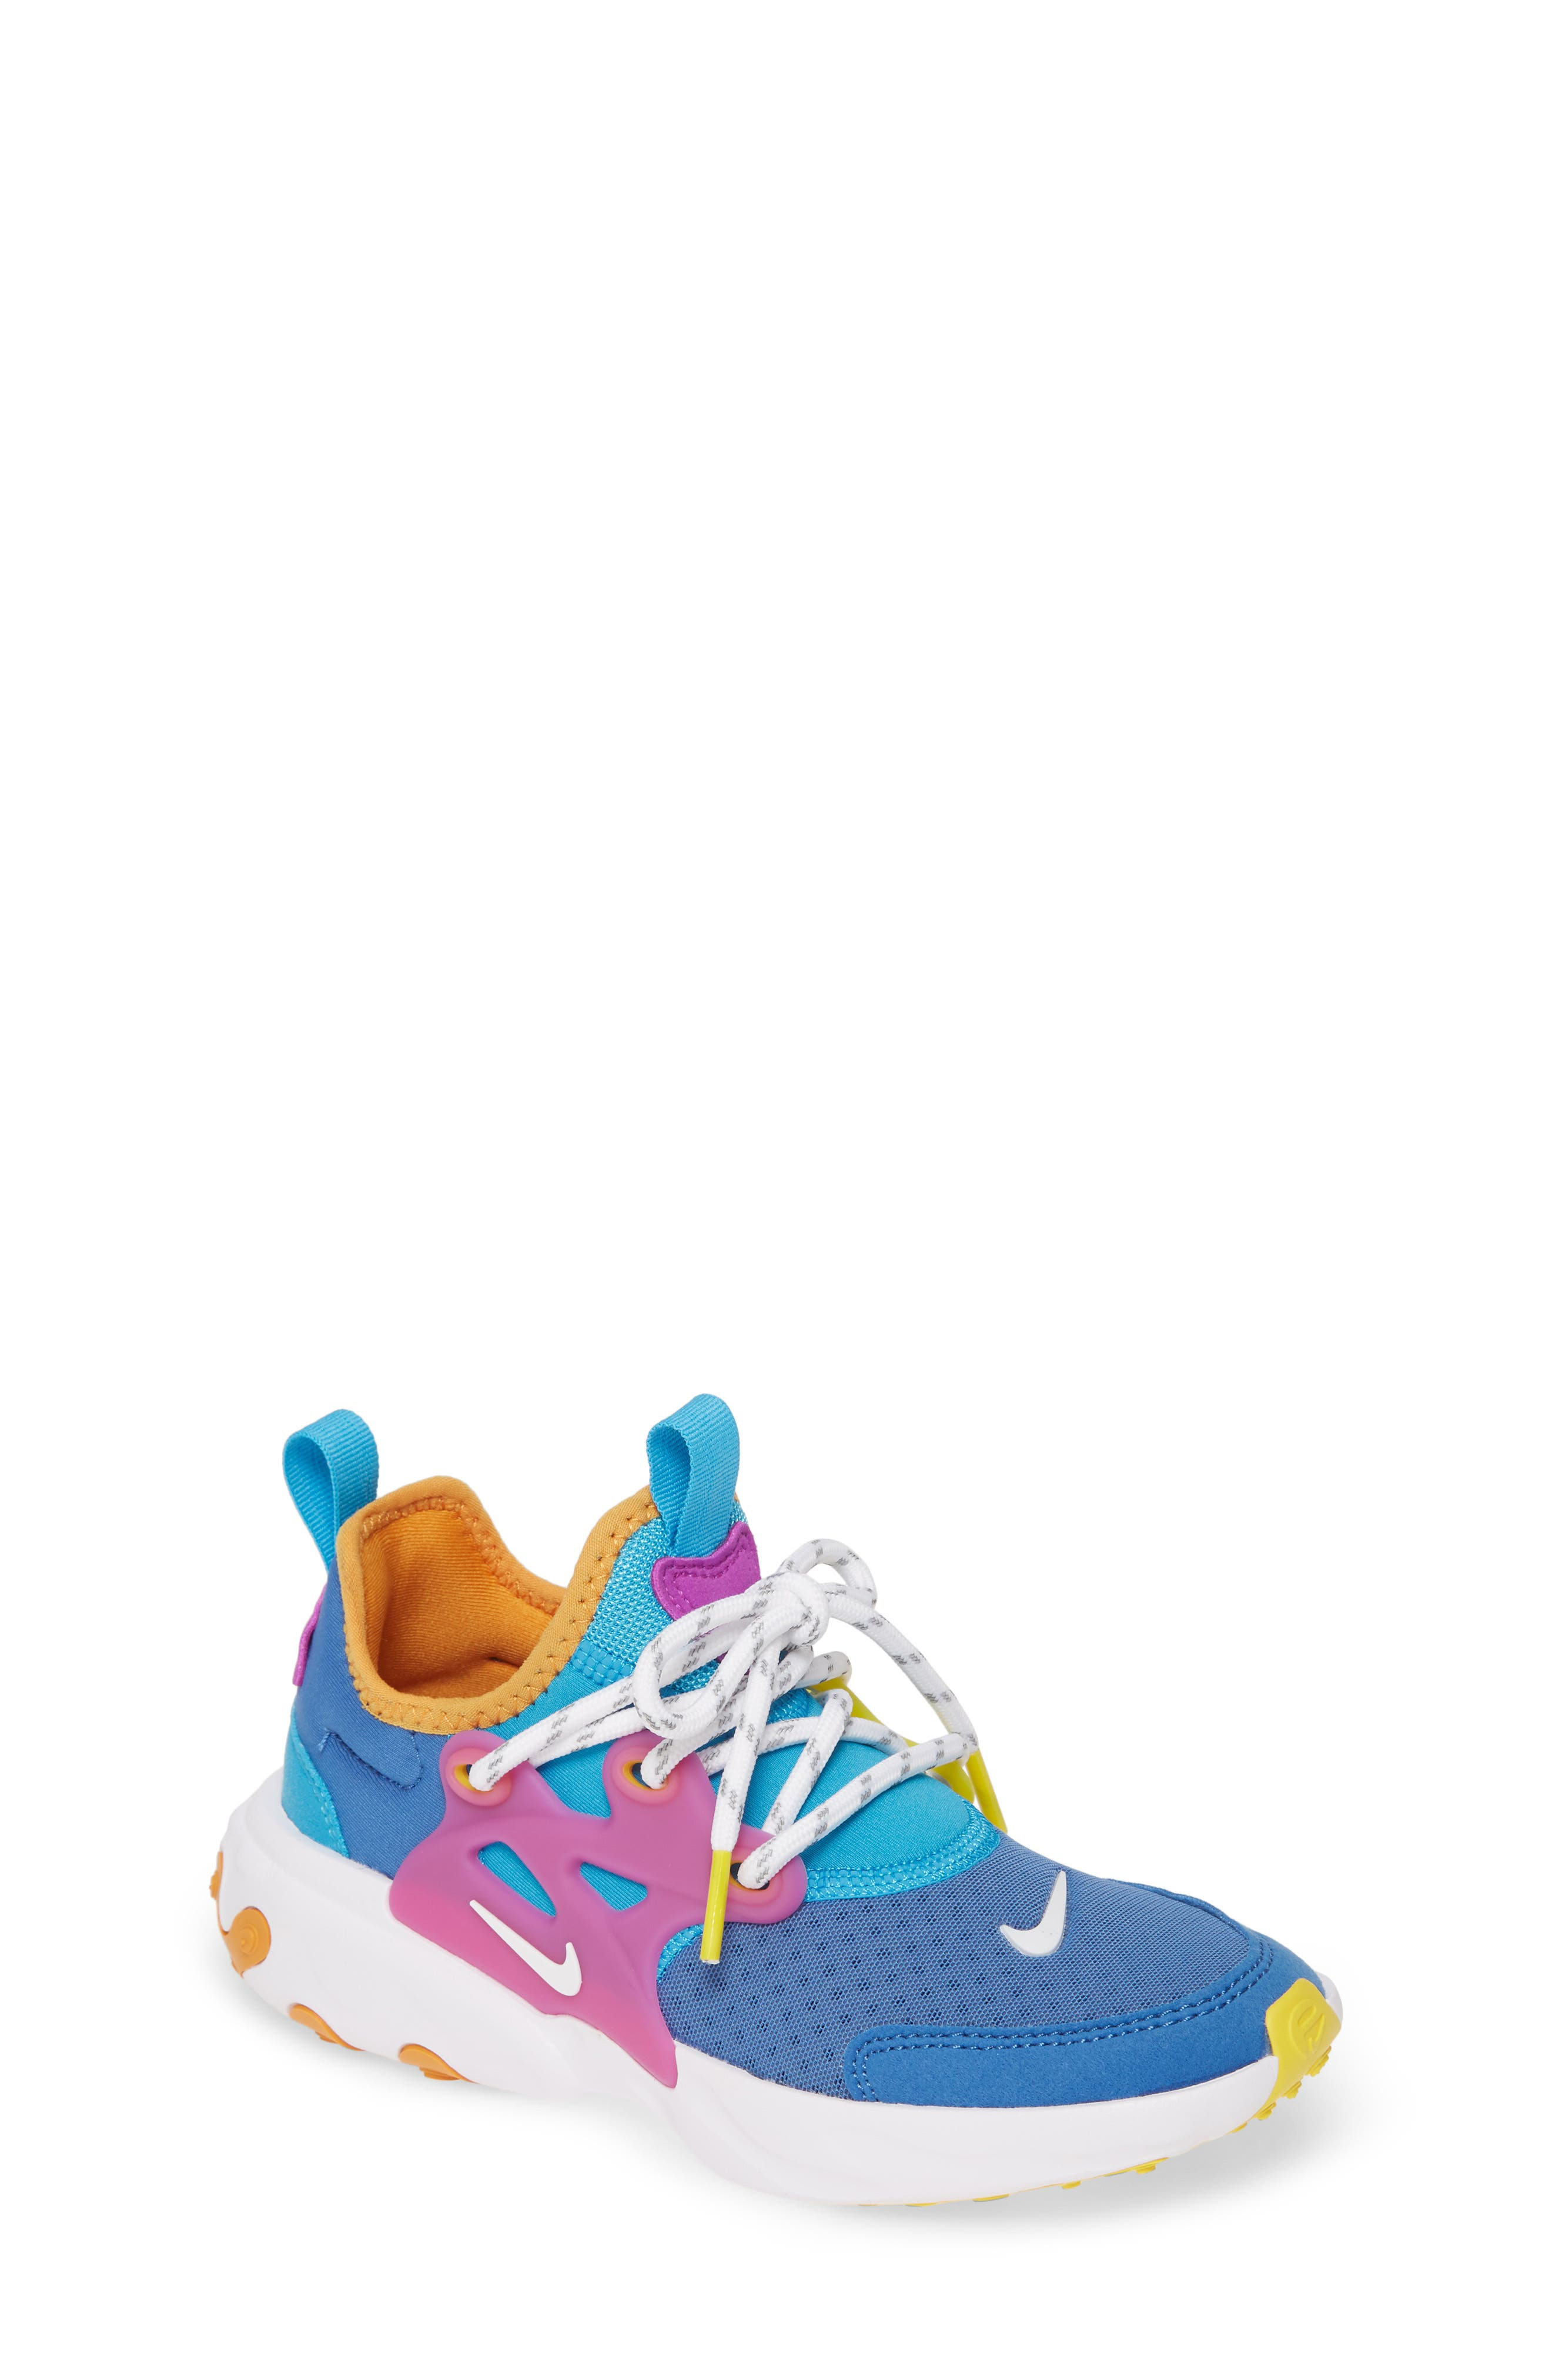 All Boys' Adidas Baby & Walker Shoes | Nordstrom